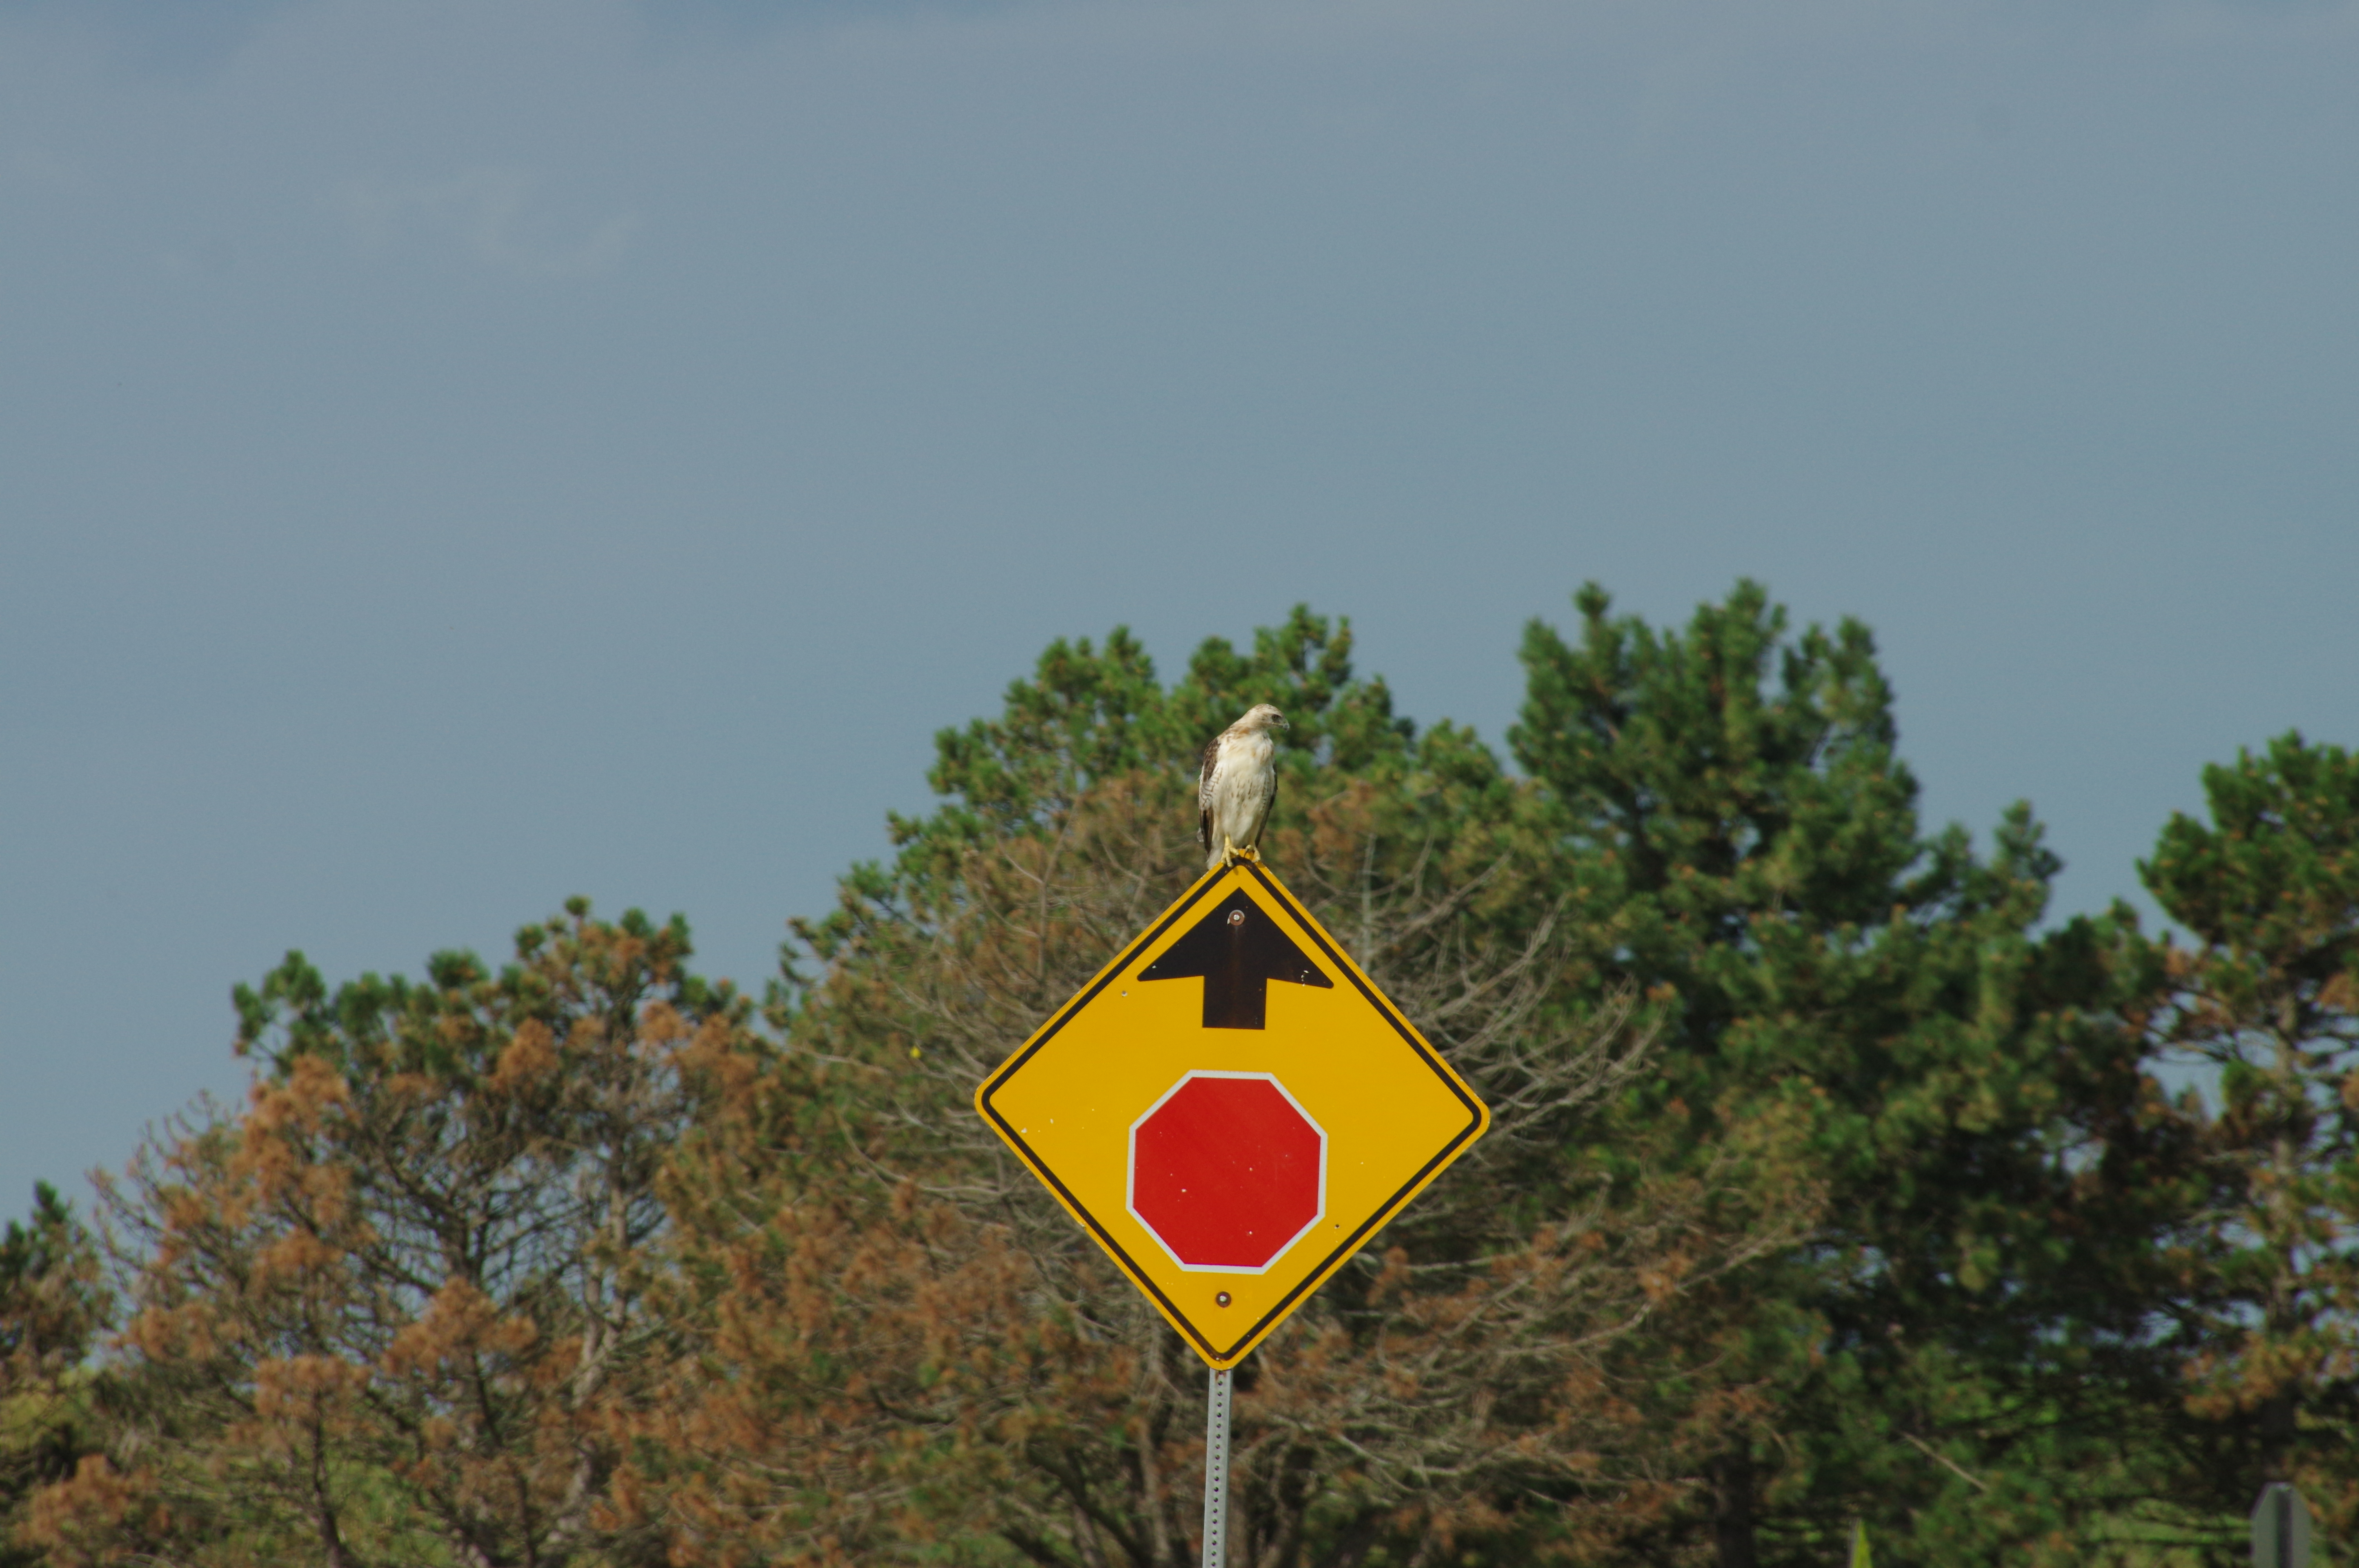 Early warning hawk: Security secures the employ of a hawk to ensure everyone's obeying traffic laws. Photo: Dan Johnson